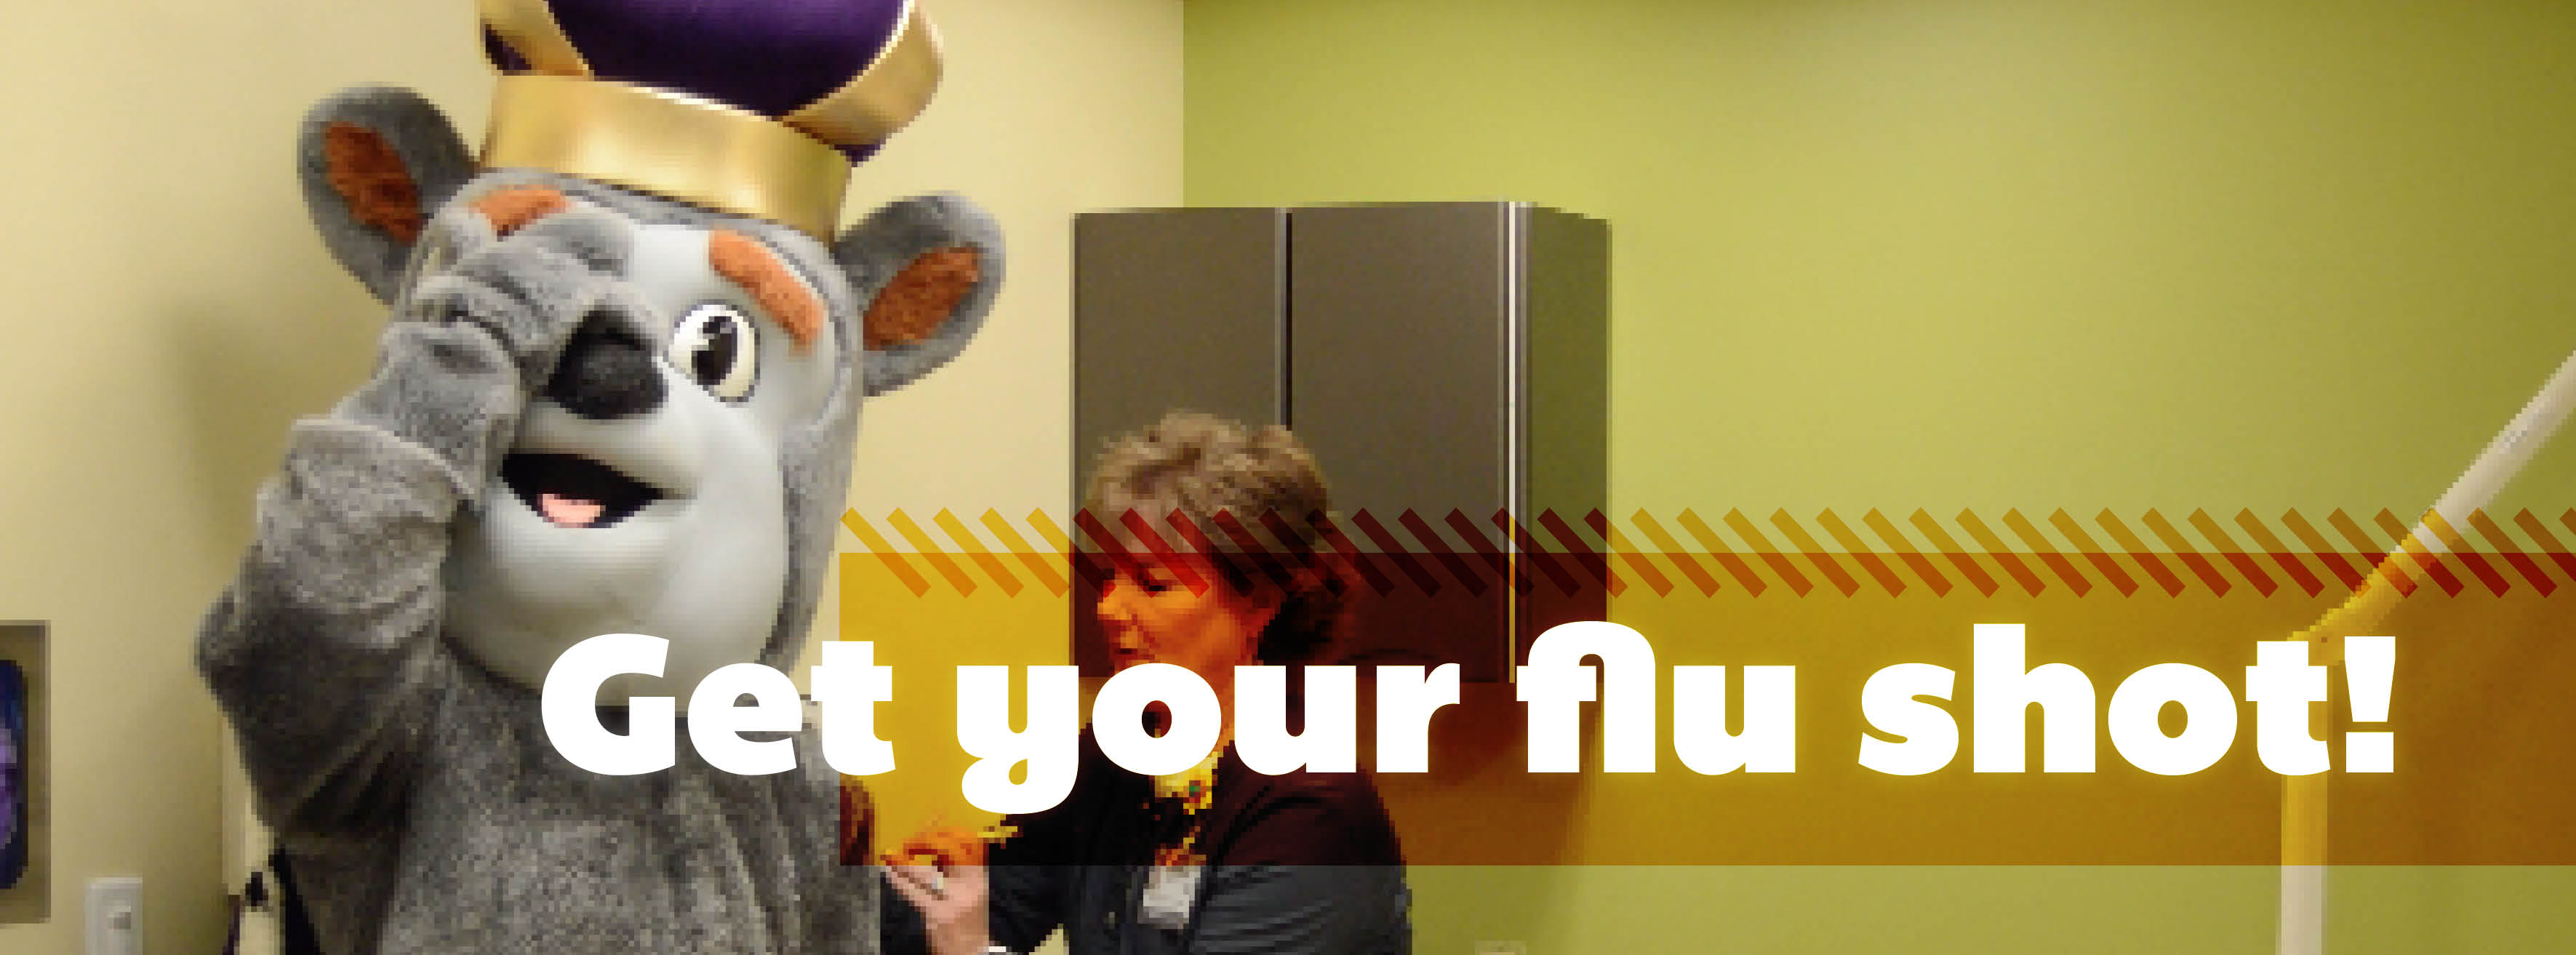 Image: Get your flu shot!